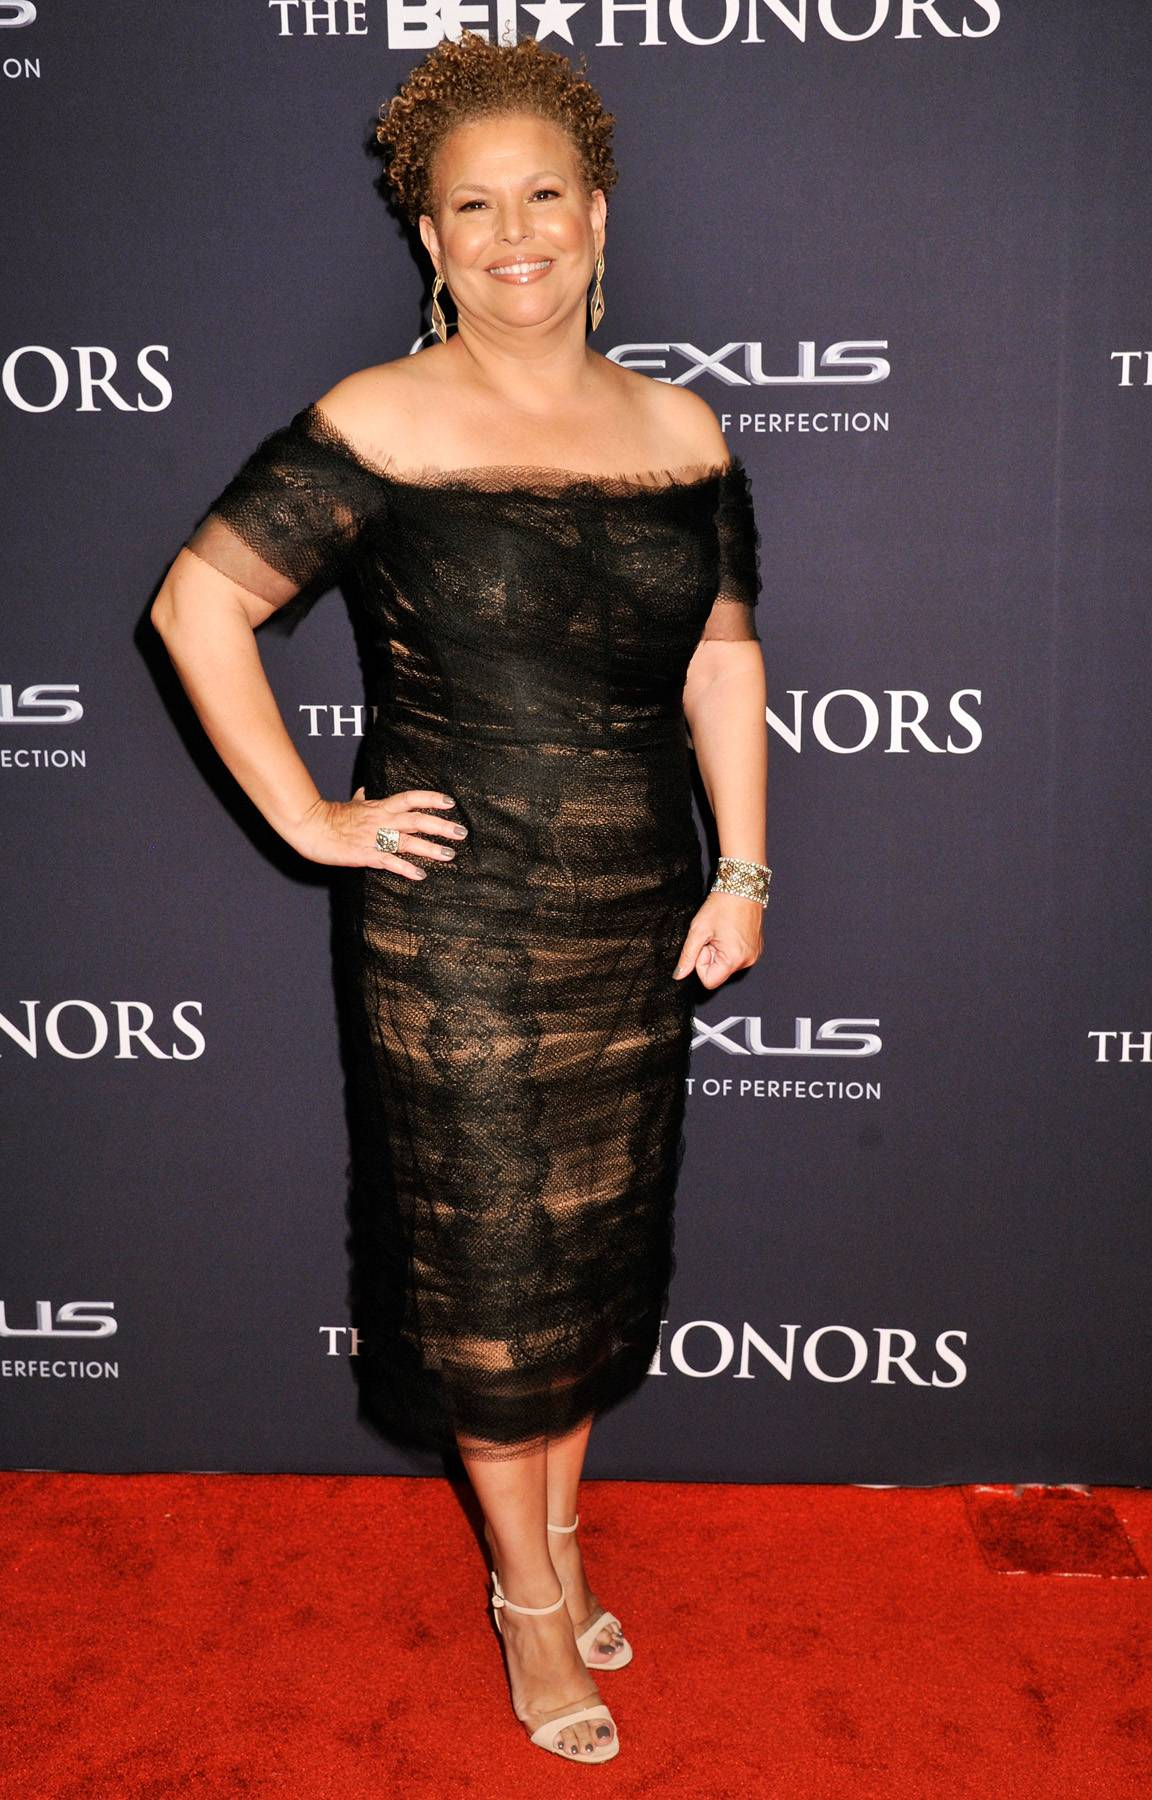 Head of the House  - CEO and Chairman of BET Debra L. Lee graces the red carpet wearing her bright and beautiful smile. Her off-the-shoulder look is sleek and sophisticated. (Photo: Kris Connor/BET/Getty Images for BET)